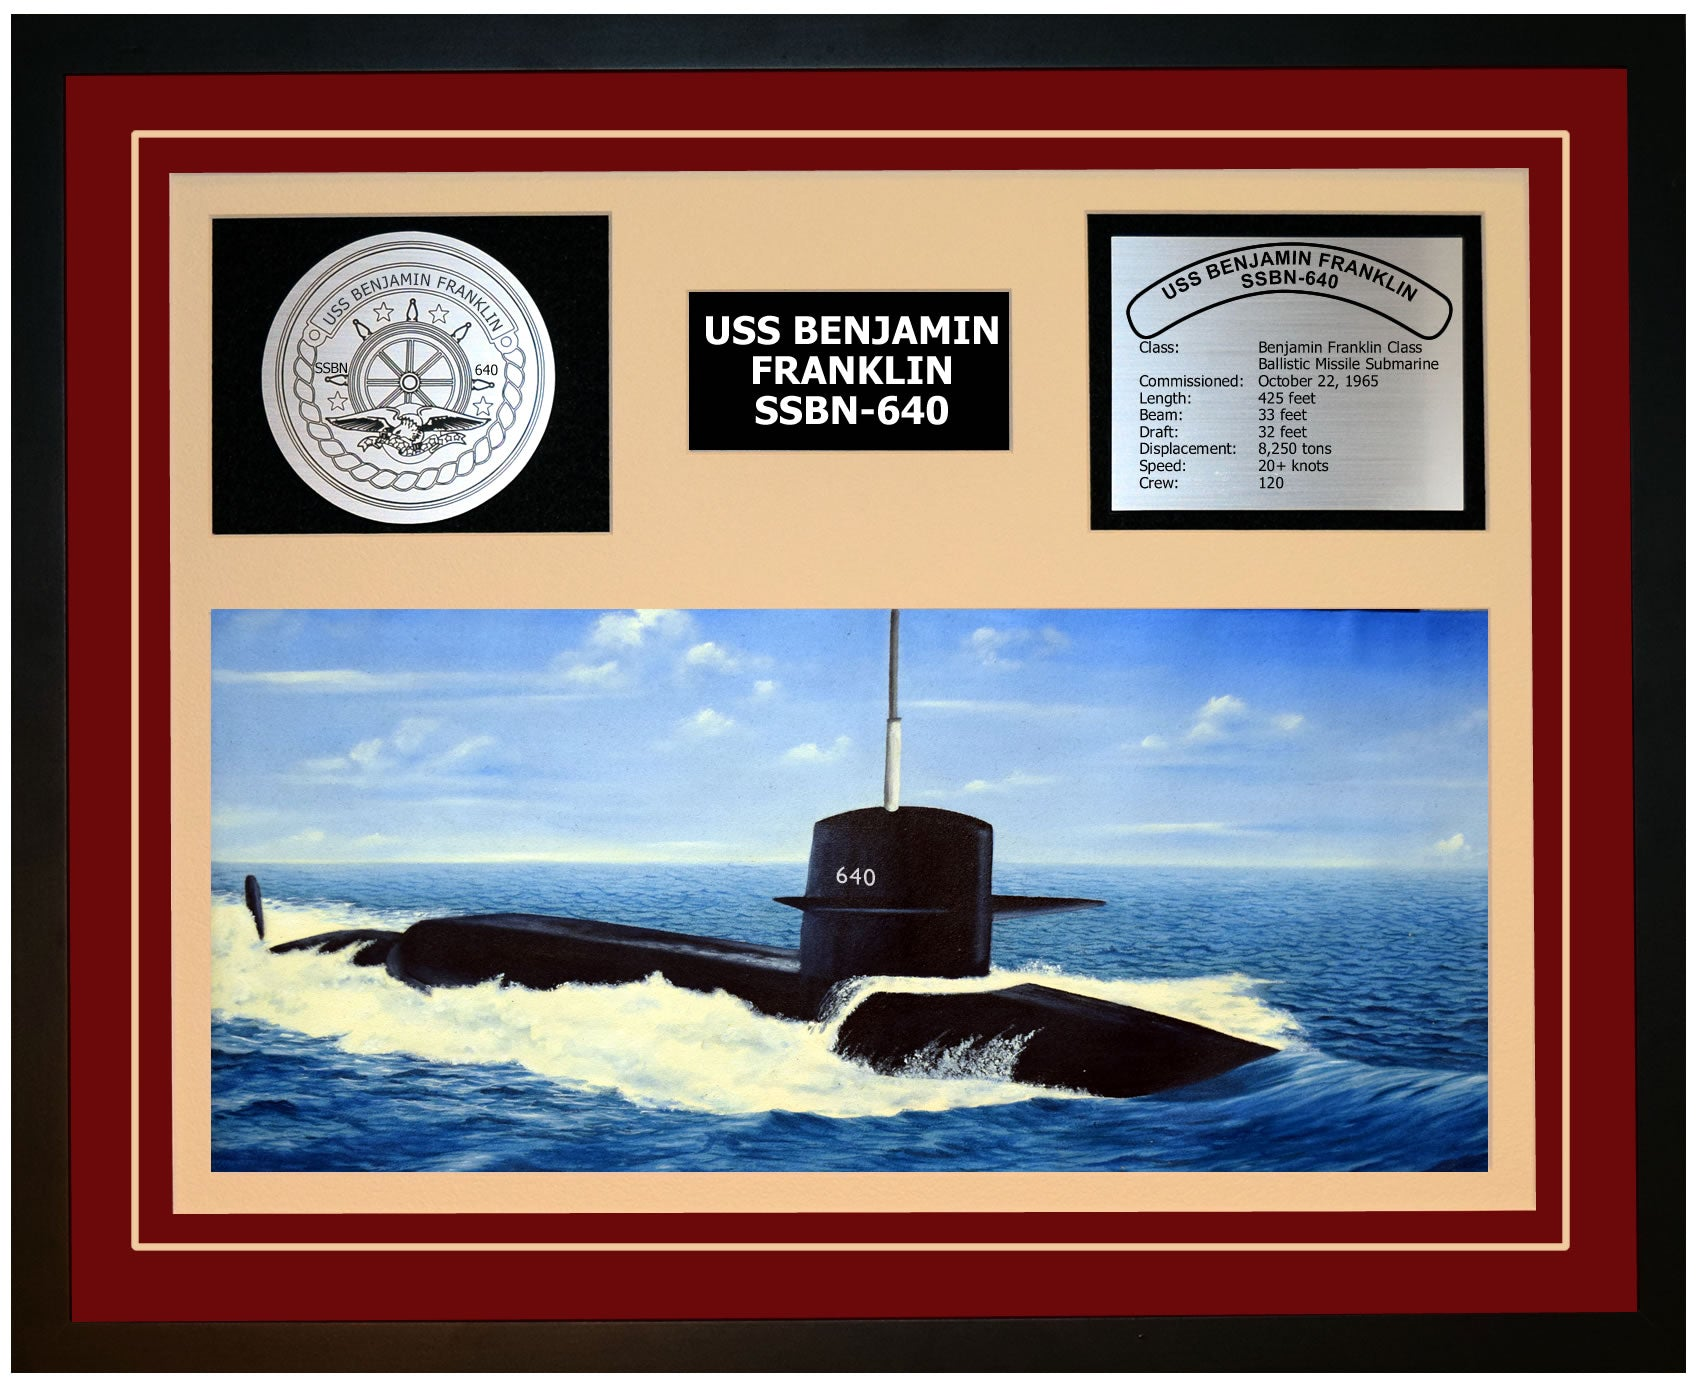 USS BENJAMIN FRANKLIN SSBN-640 Framed Navy Ship Display Burgundy